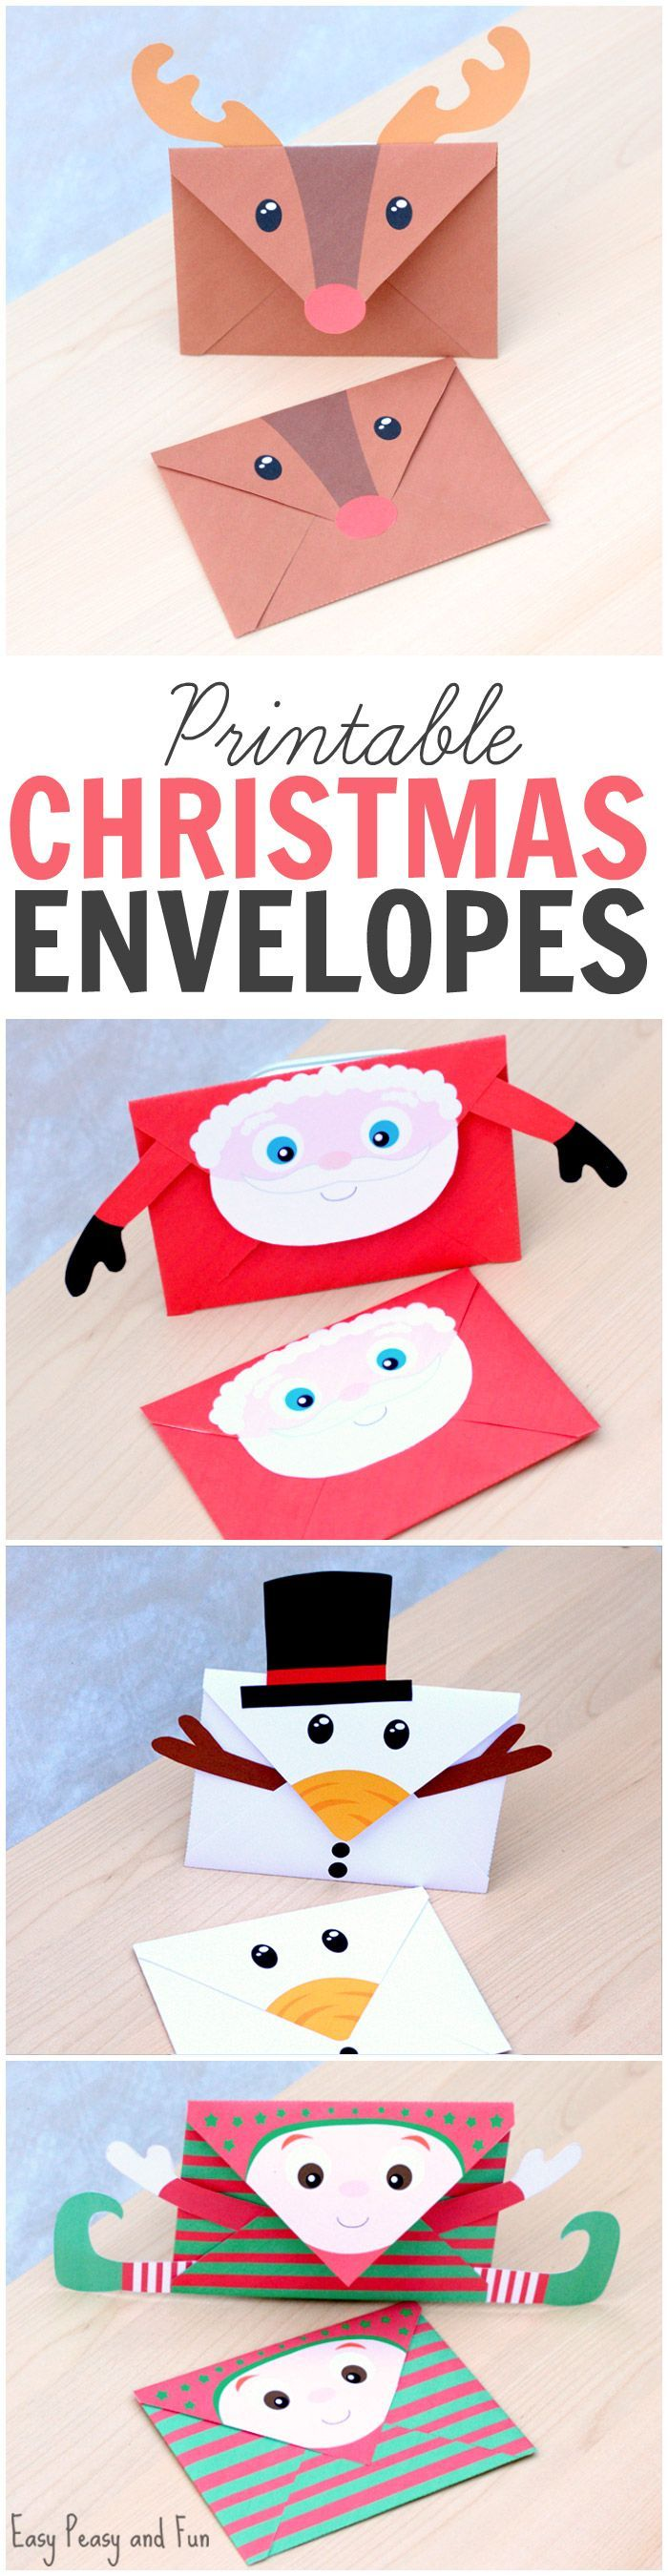 These free printable Christmas envelopes are so cute!